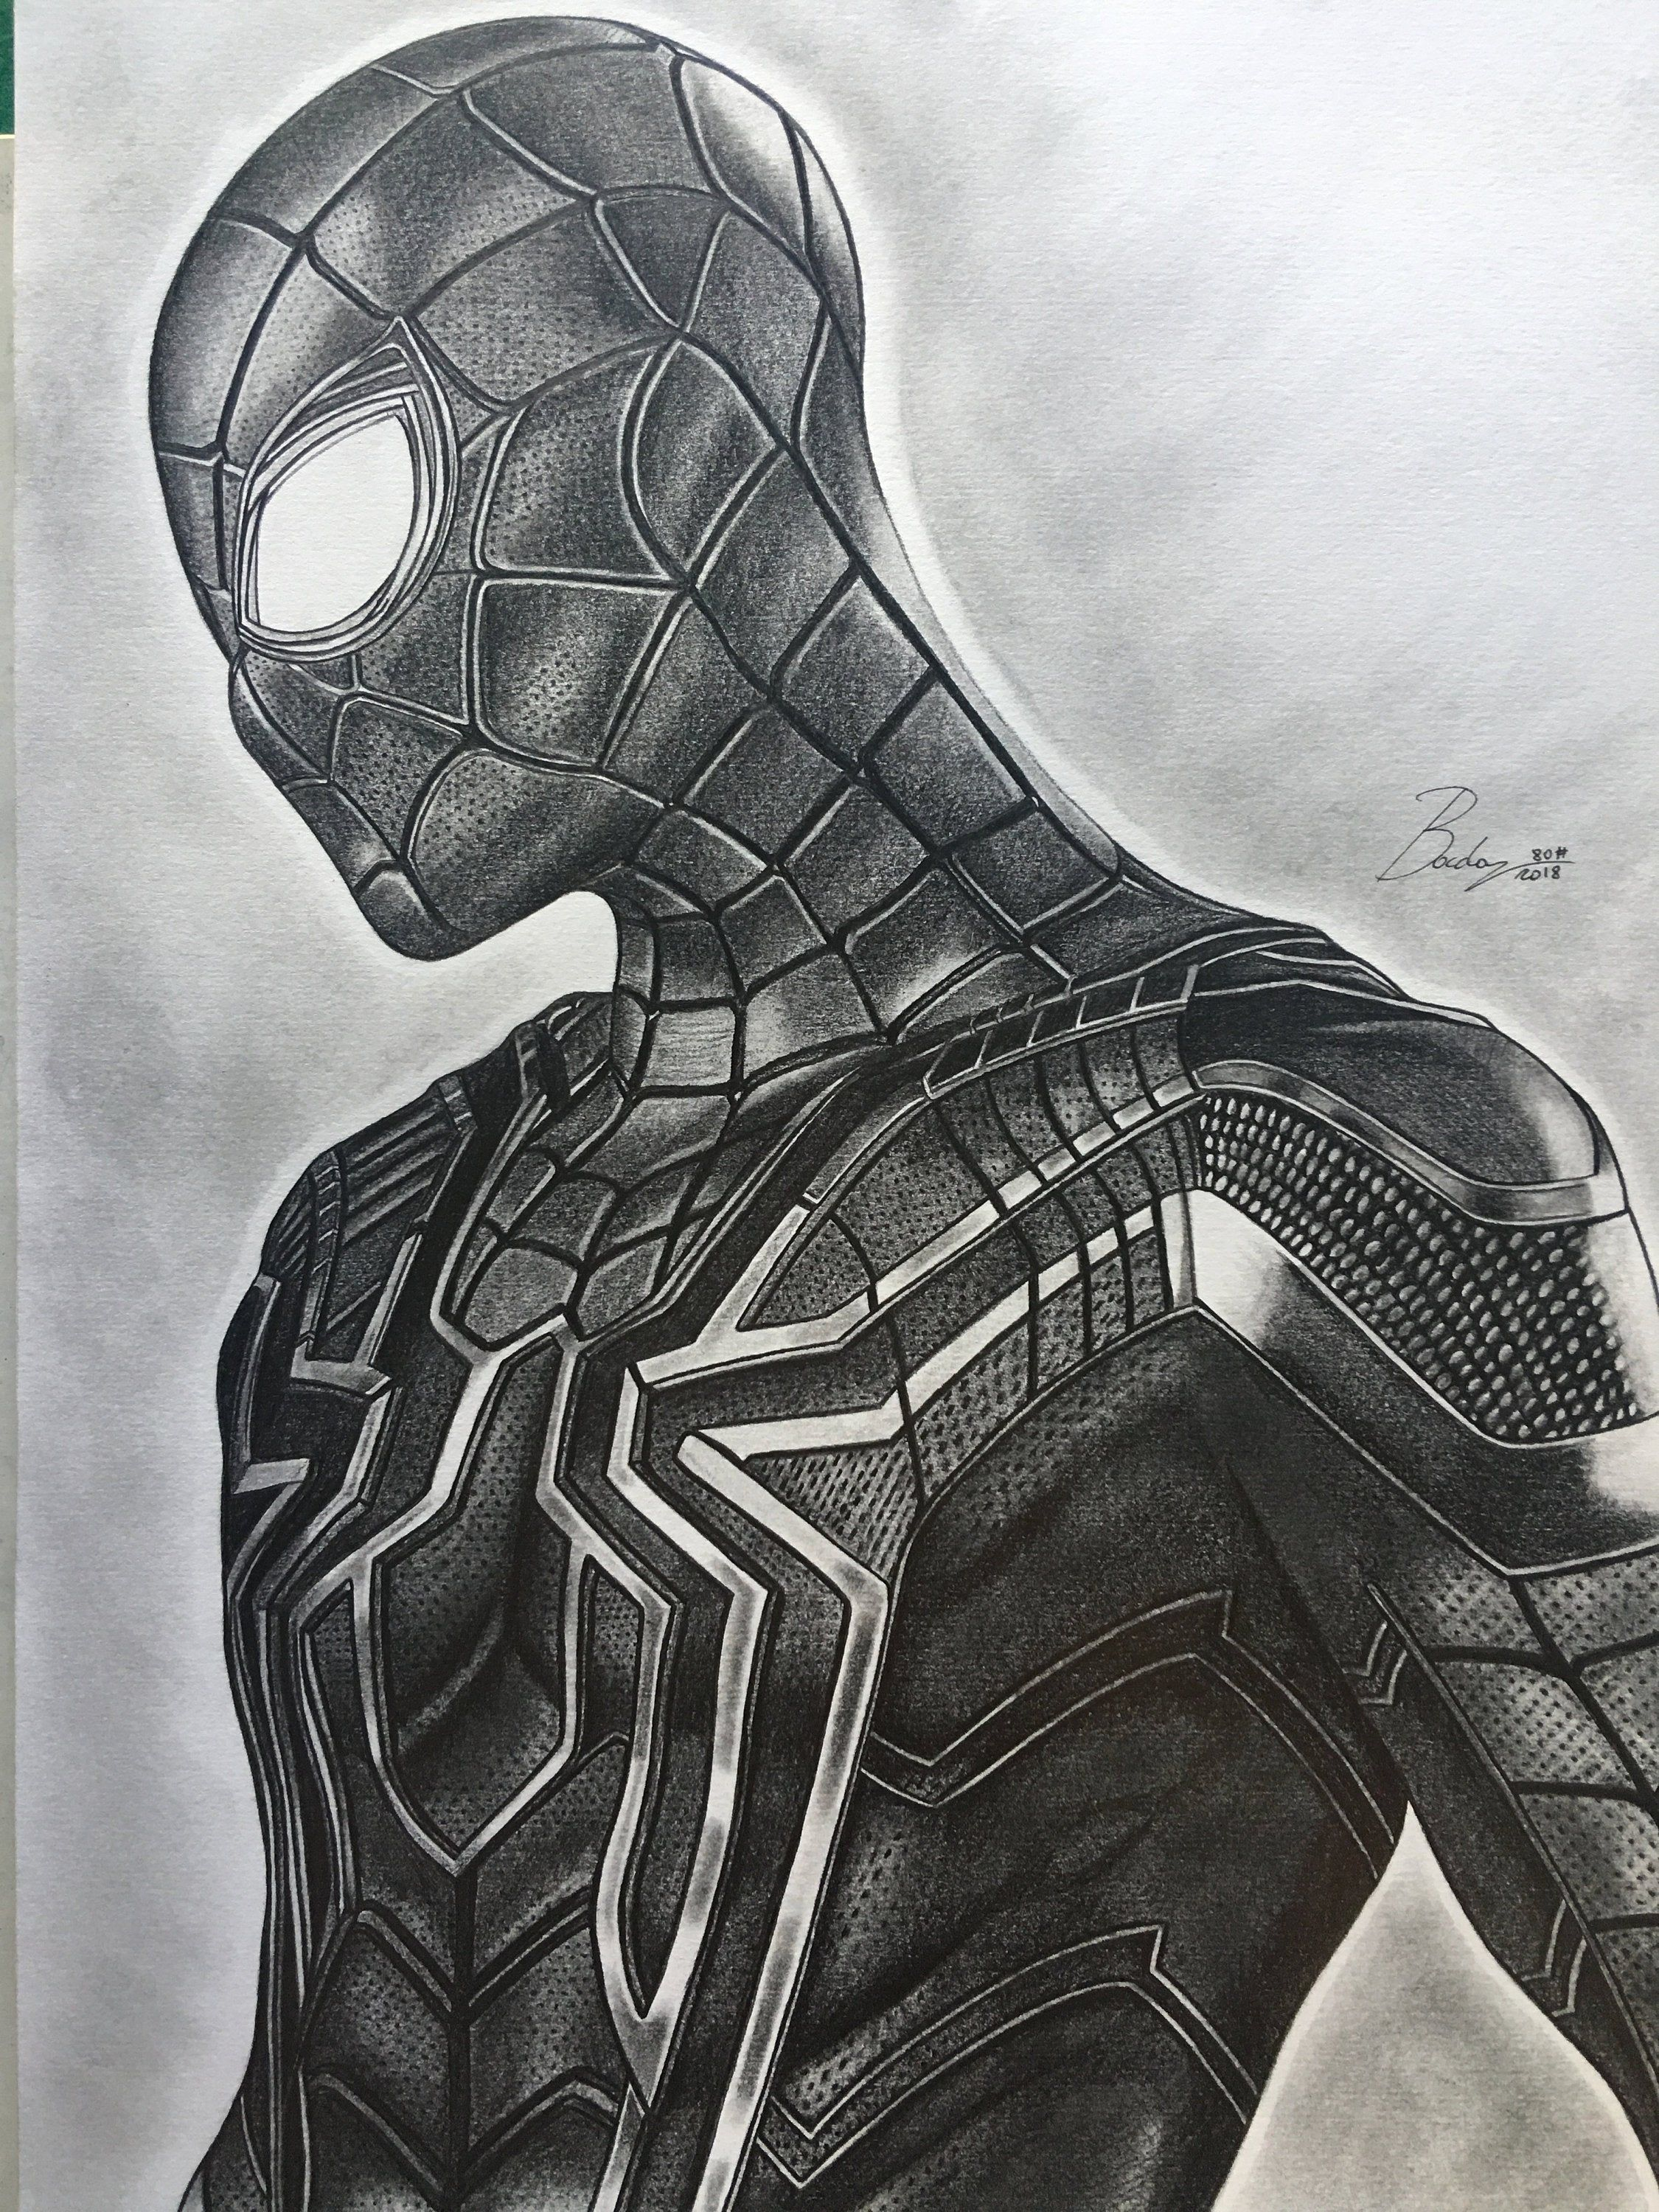 Original Portrait In Spiderman S Pencil From The Avengers Etsy In 2020 Marvel Drawings Marvel Art Drawings Drawing Superheroes